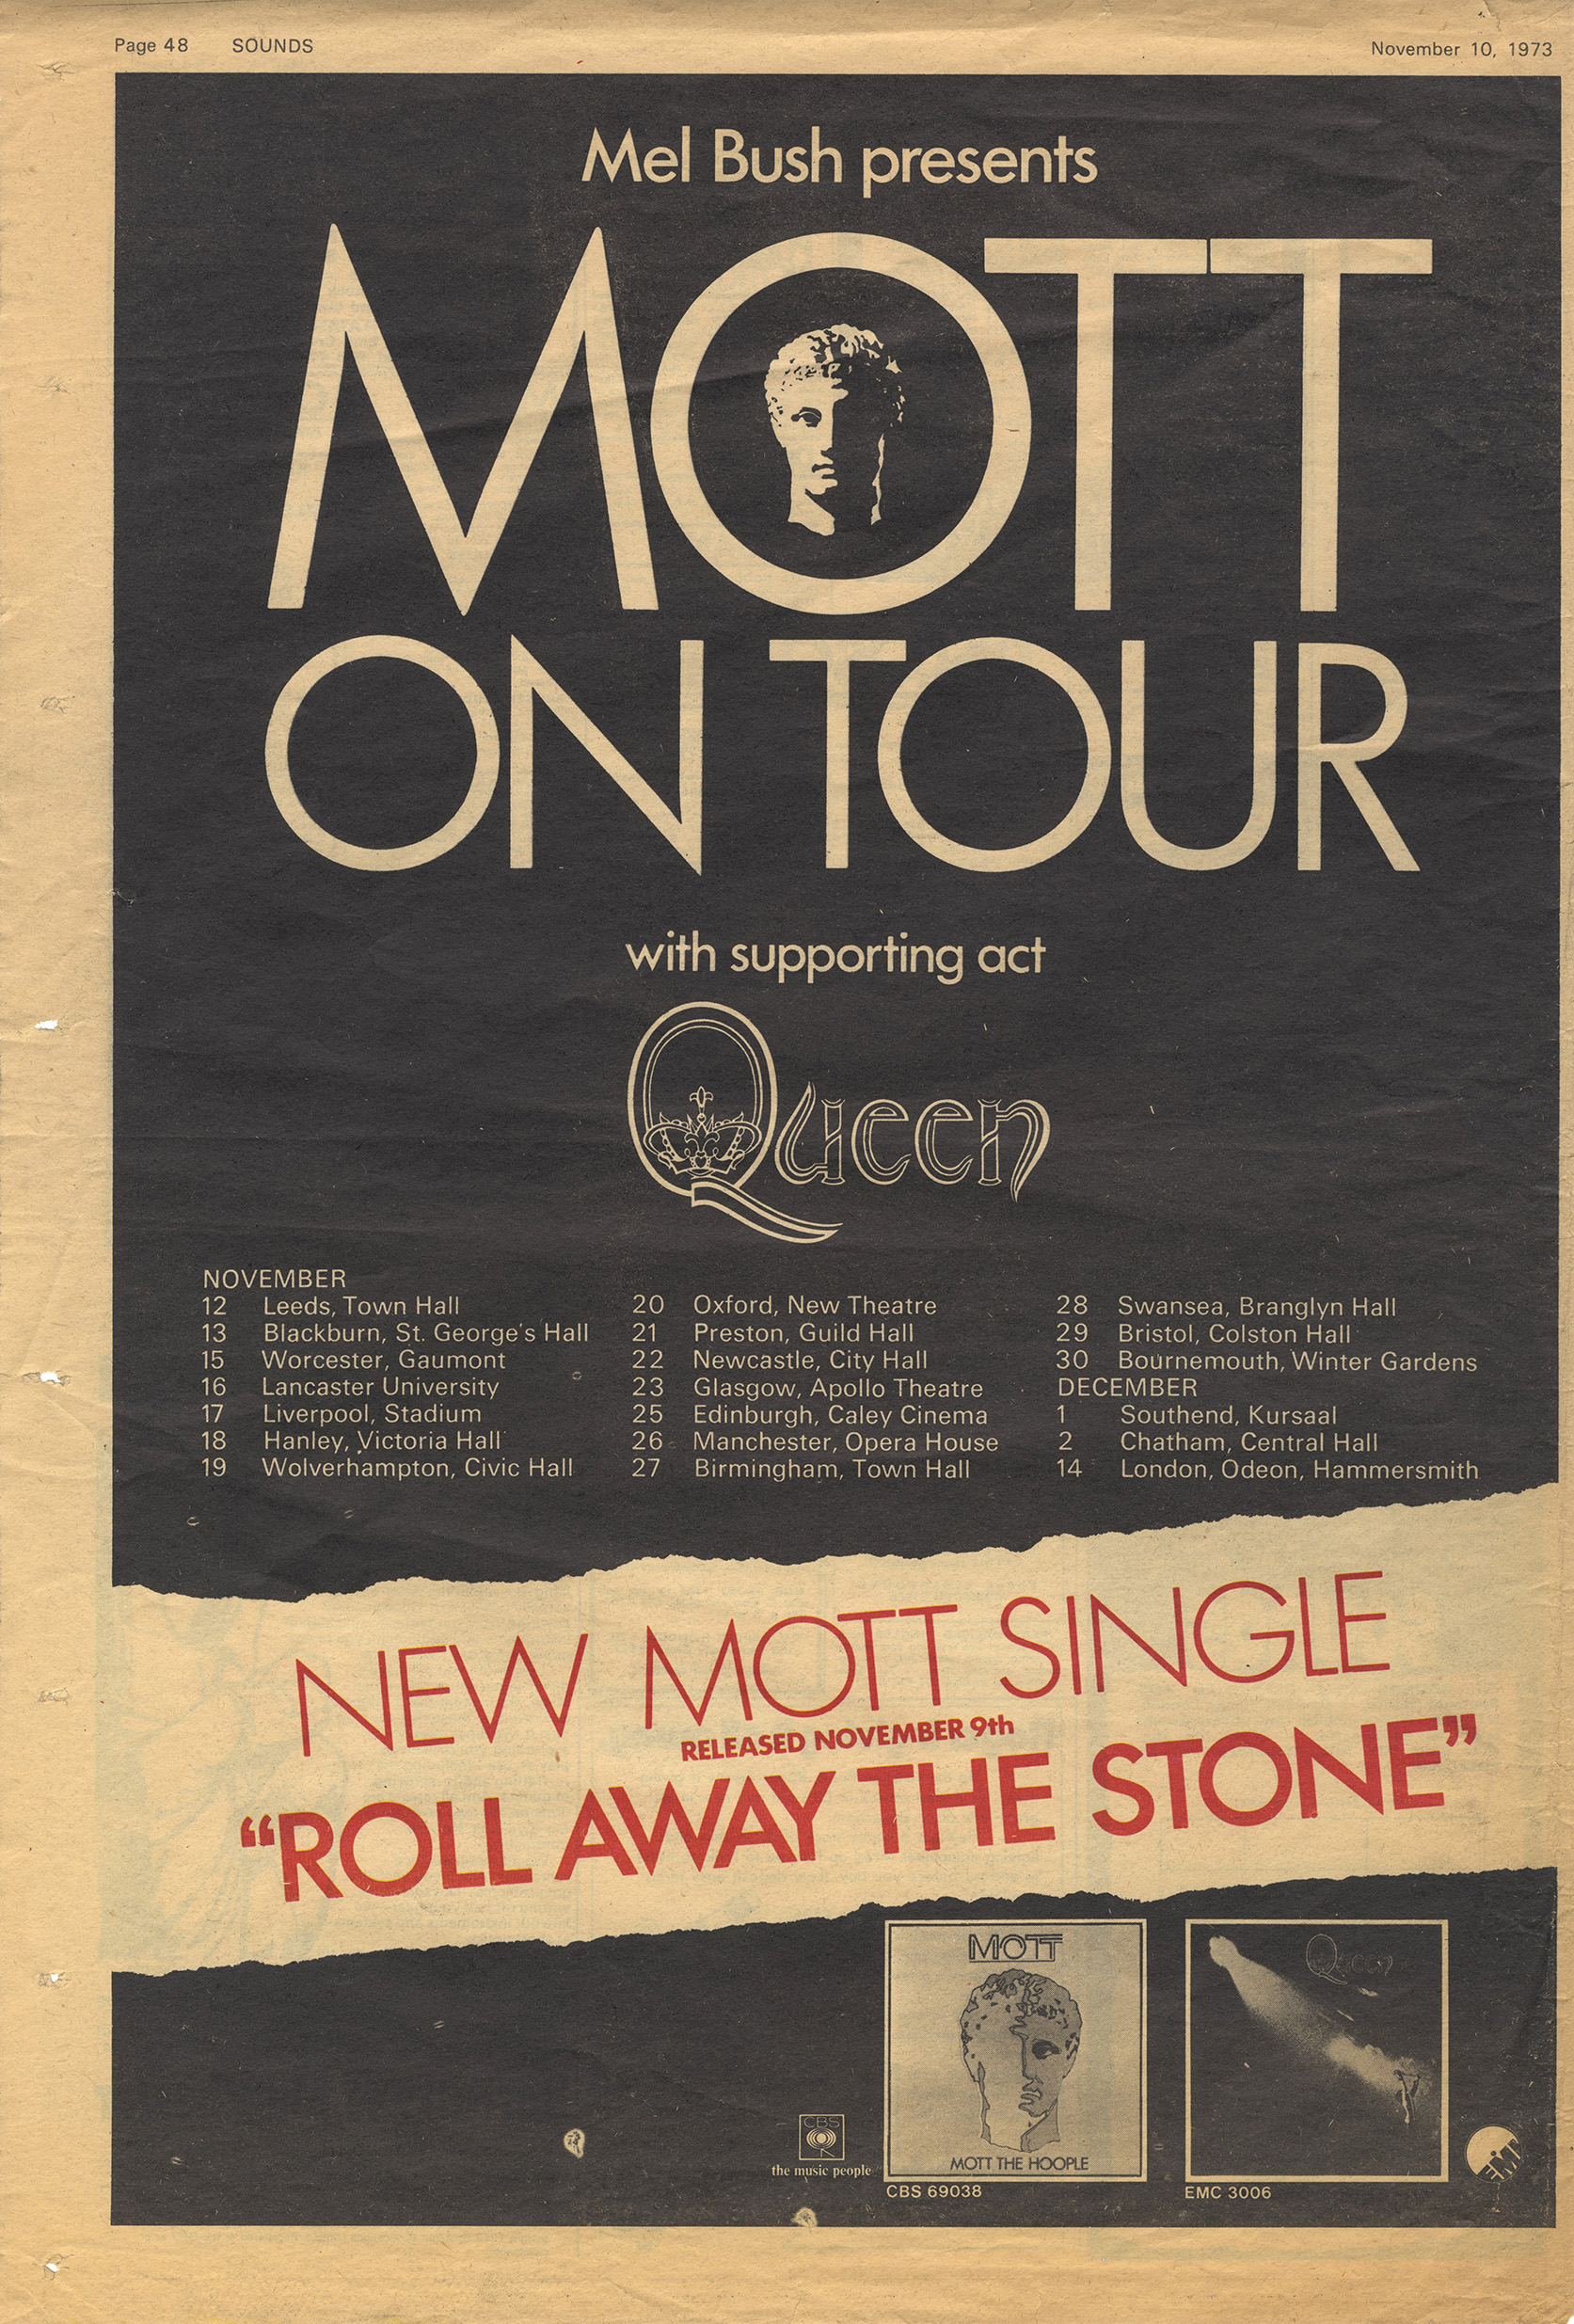 Queen - first proper tour in November 1973